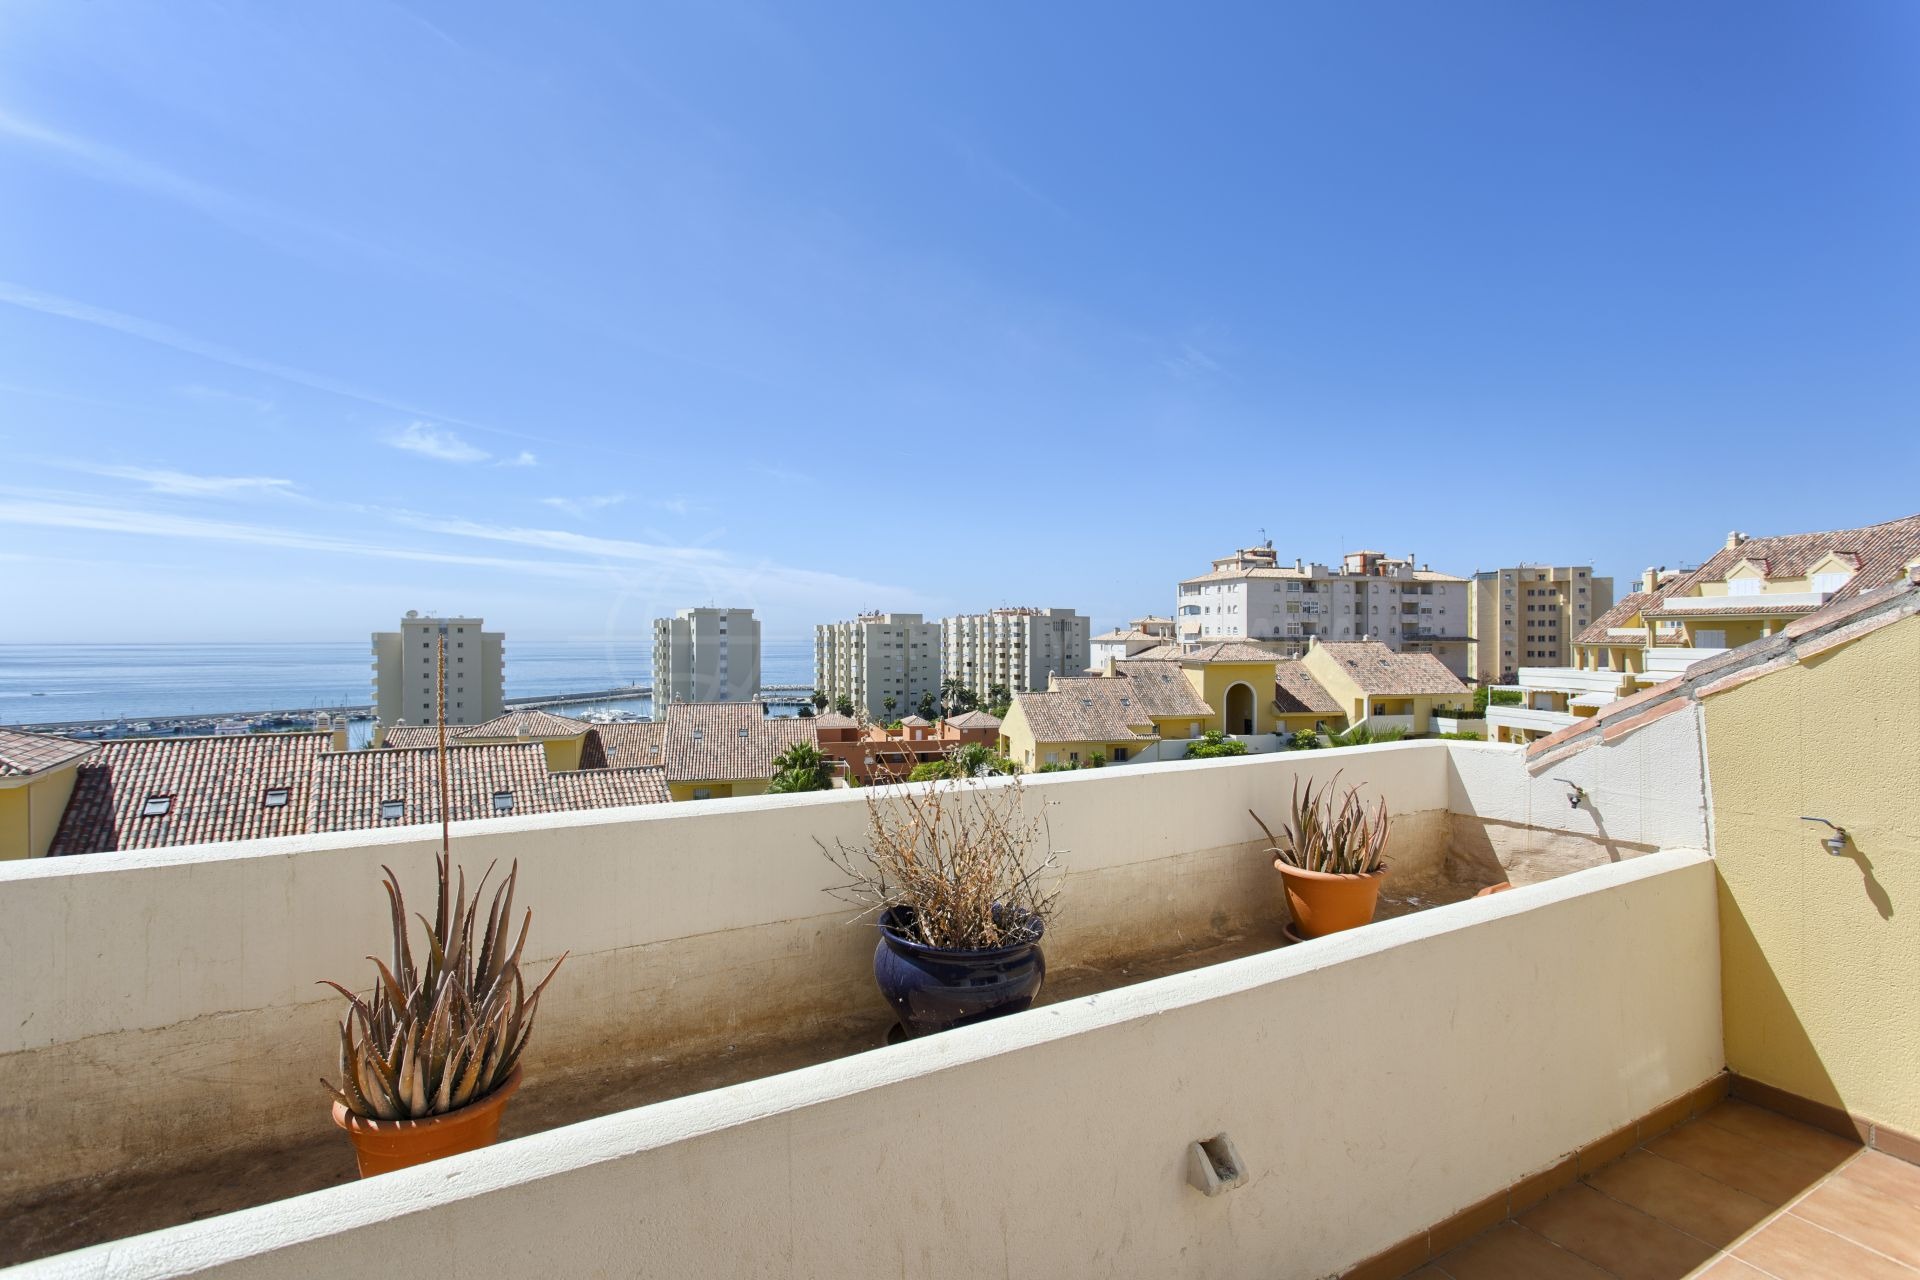 Deluxe duplex penthouse with sea views for sale in Puerto Alto